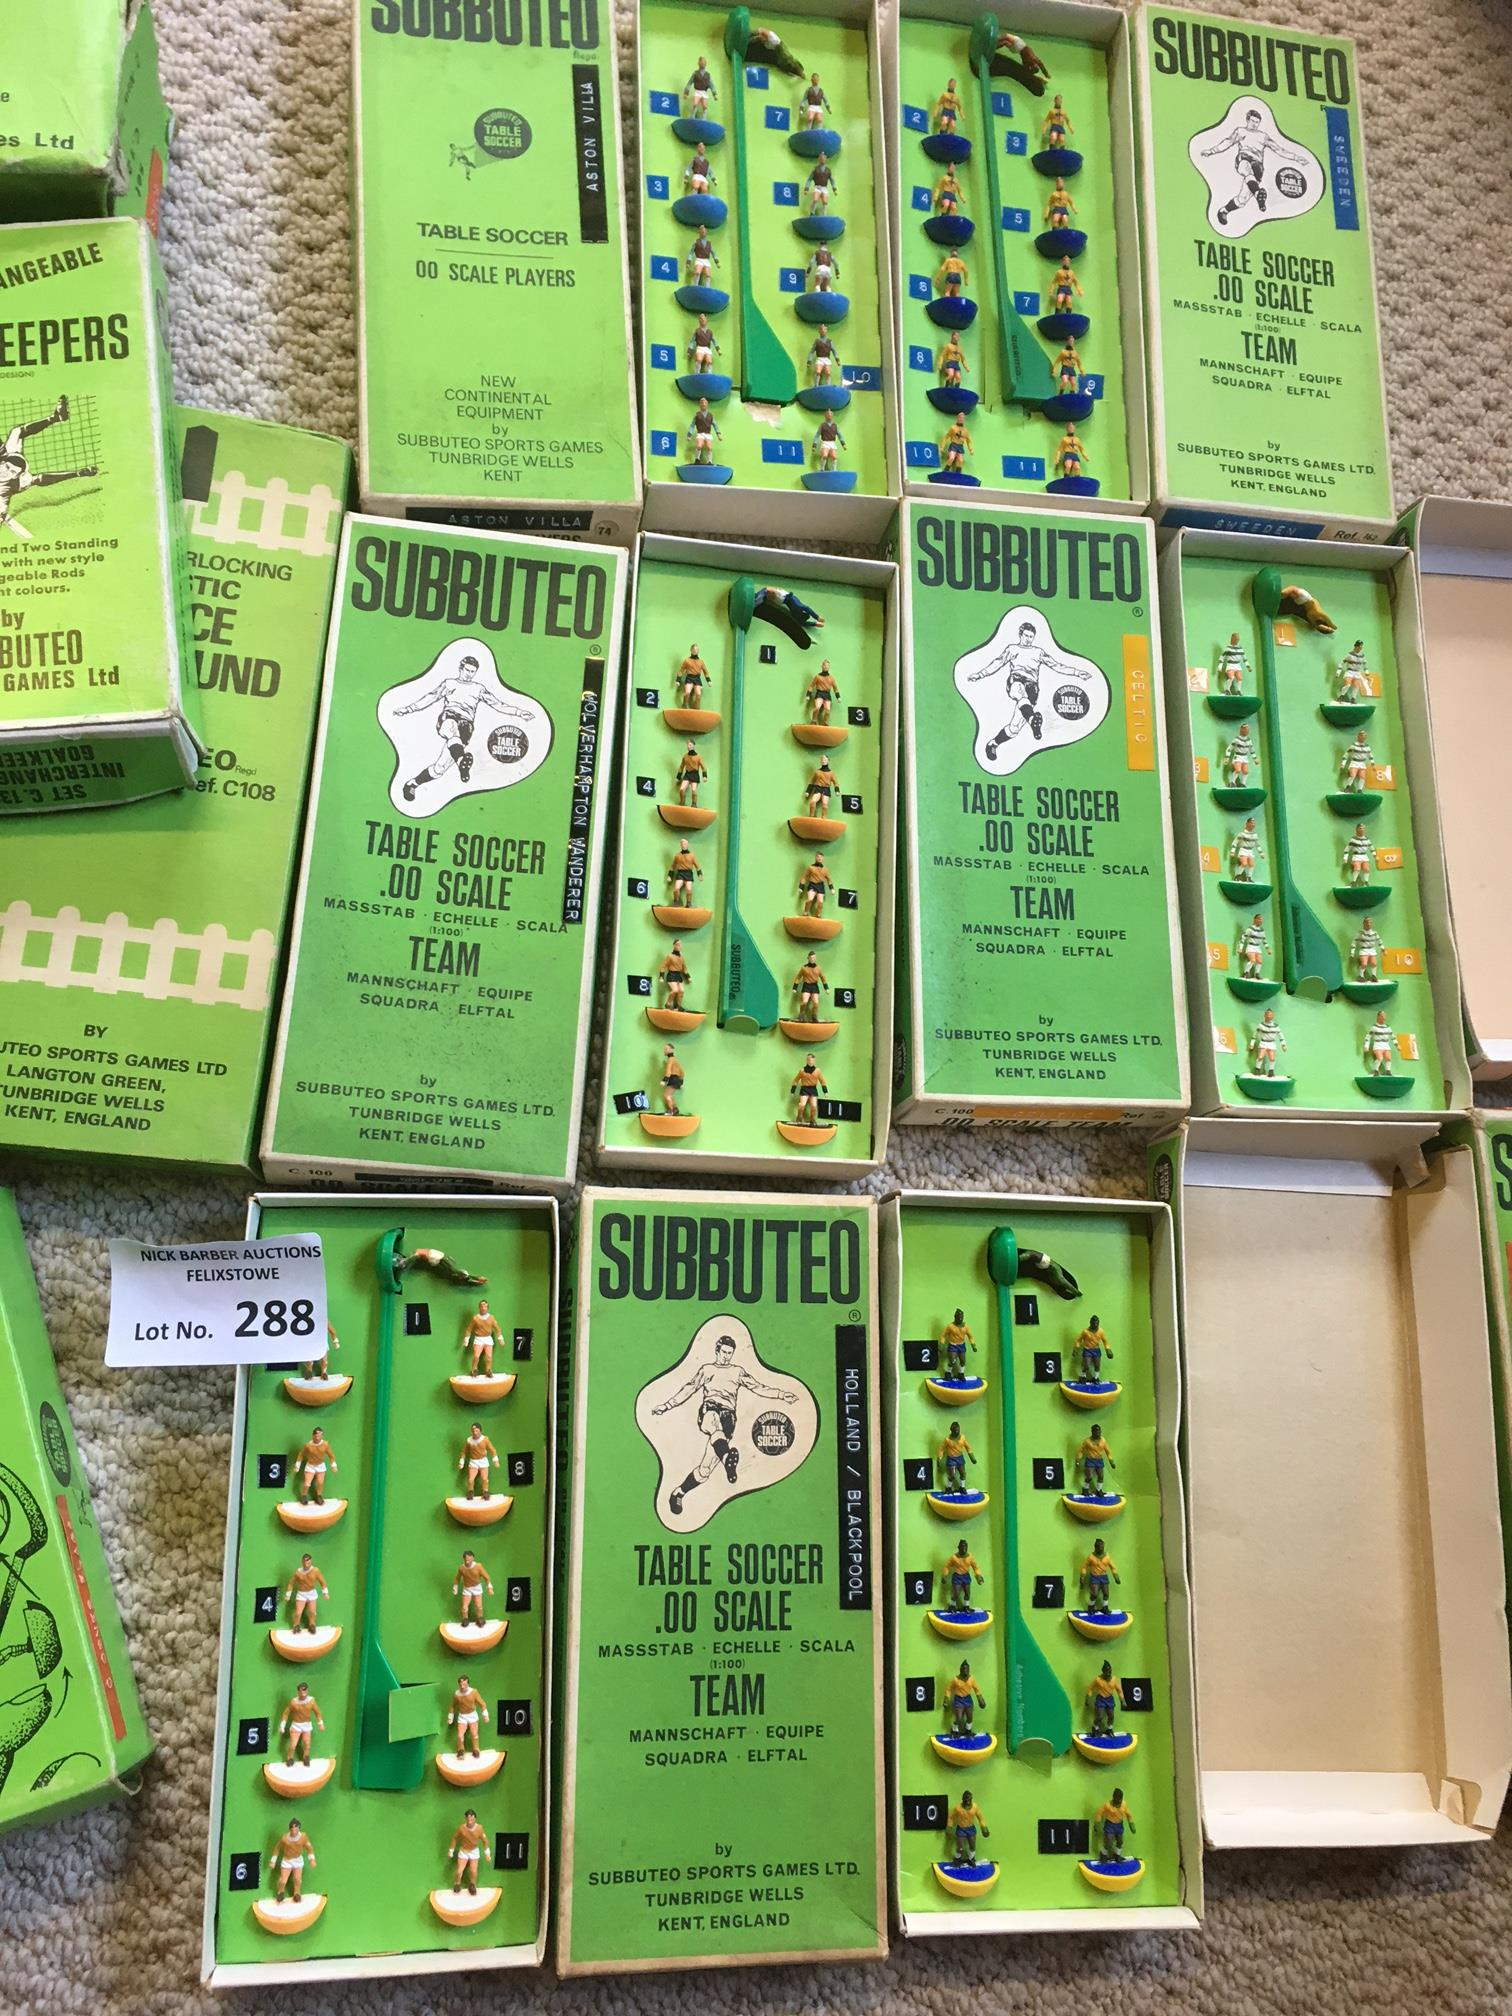 Diecast : Subbuteo - nice collection of accessorie - Image 2 of 3